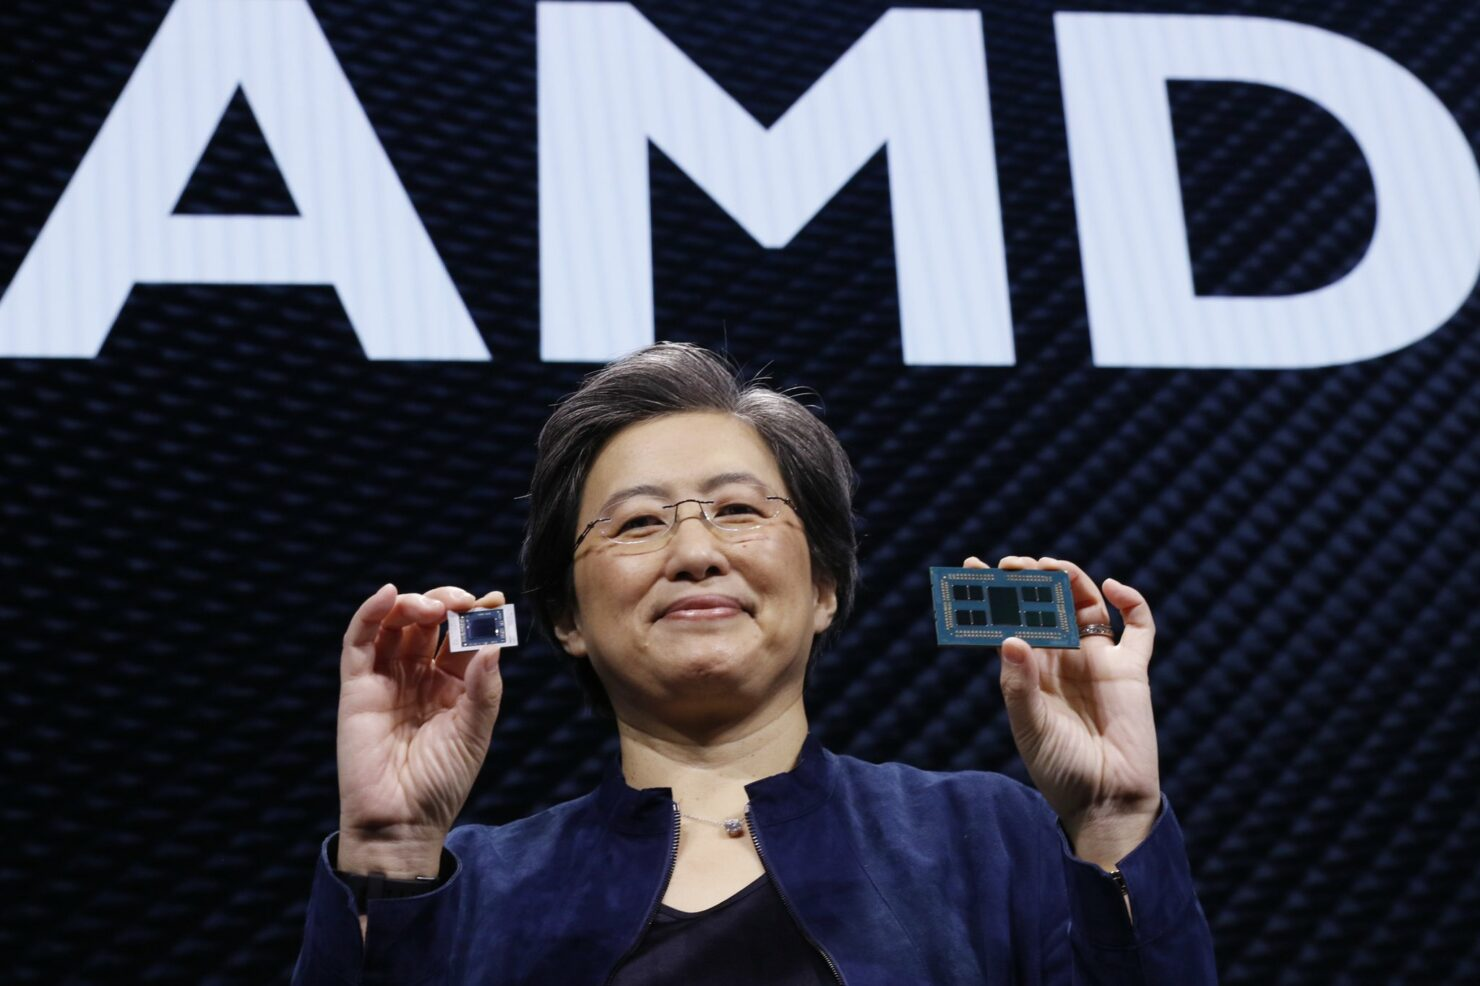 AMD CEO, Lisa Su, Expects Chip Shortages To Continue In First Half of 2022, Easing Down in Second Half